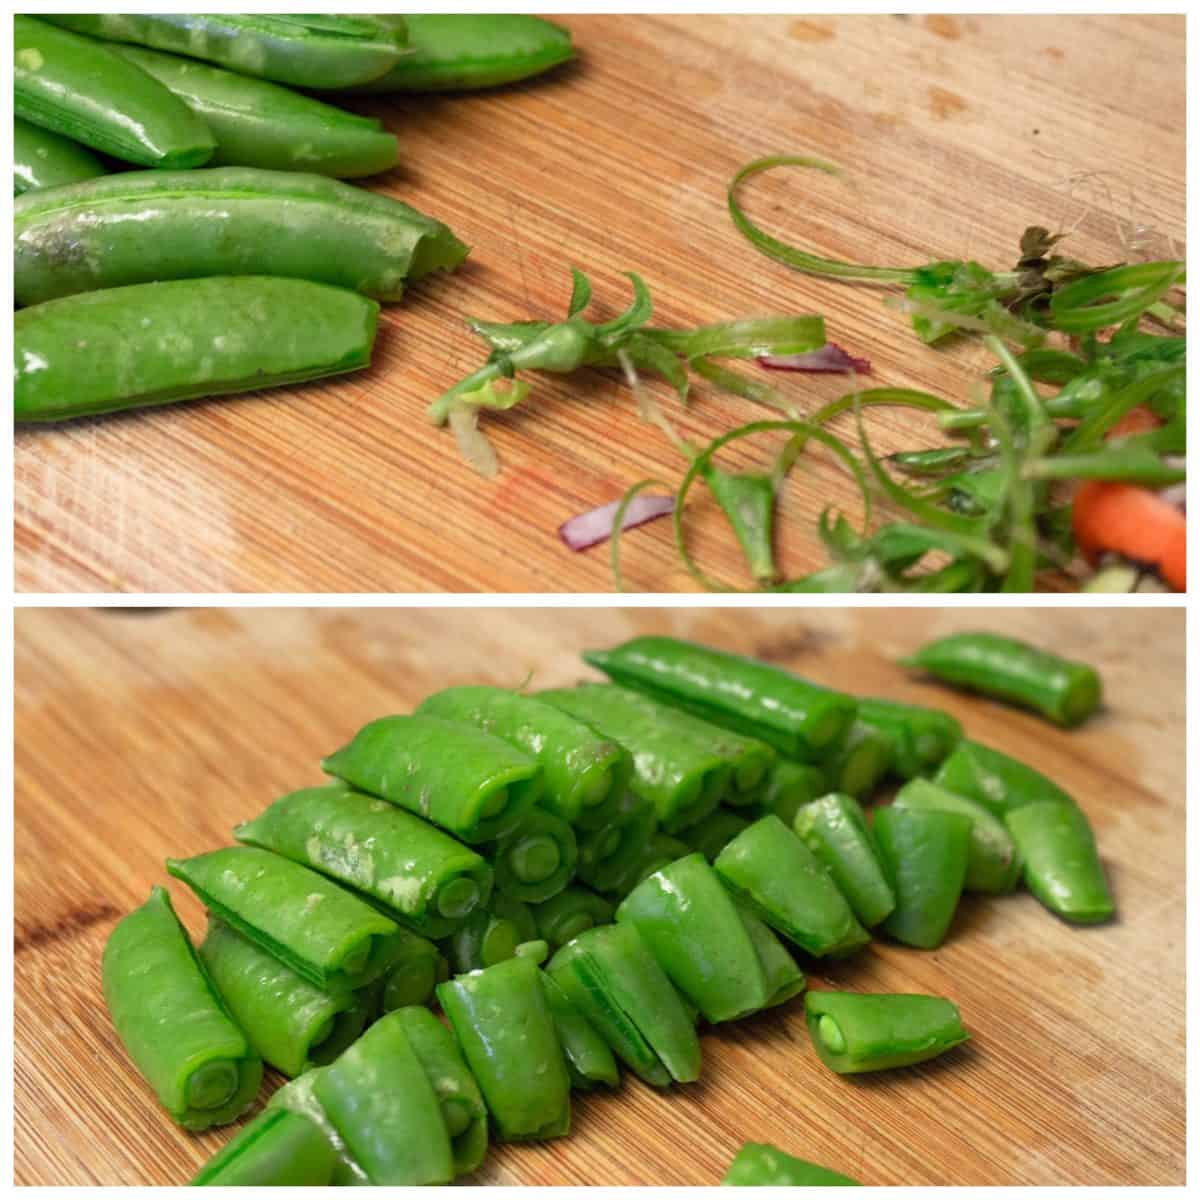 two photos of sugar snap peas showing stringy parts removed and also showing 1 inch cuts